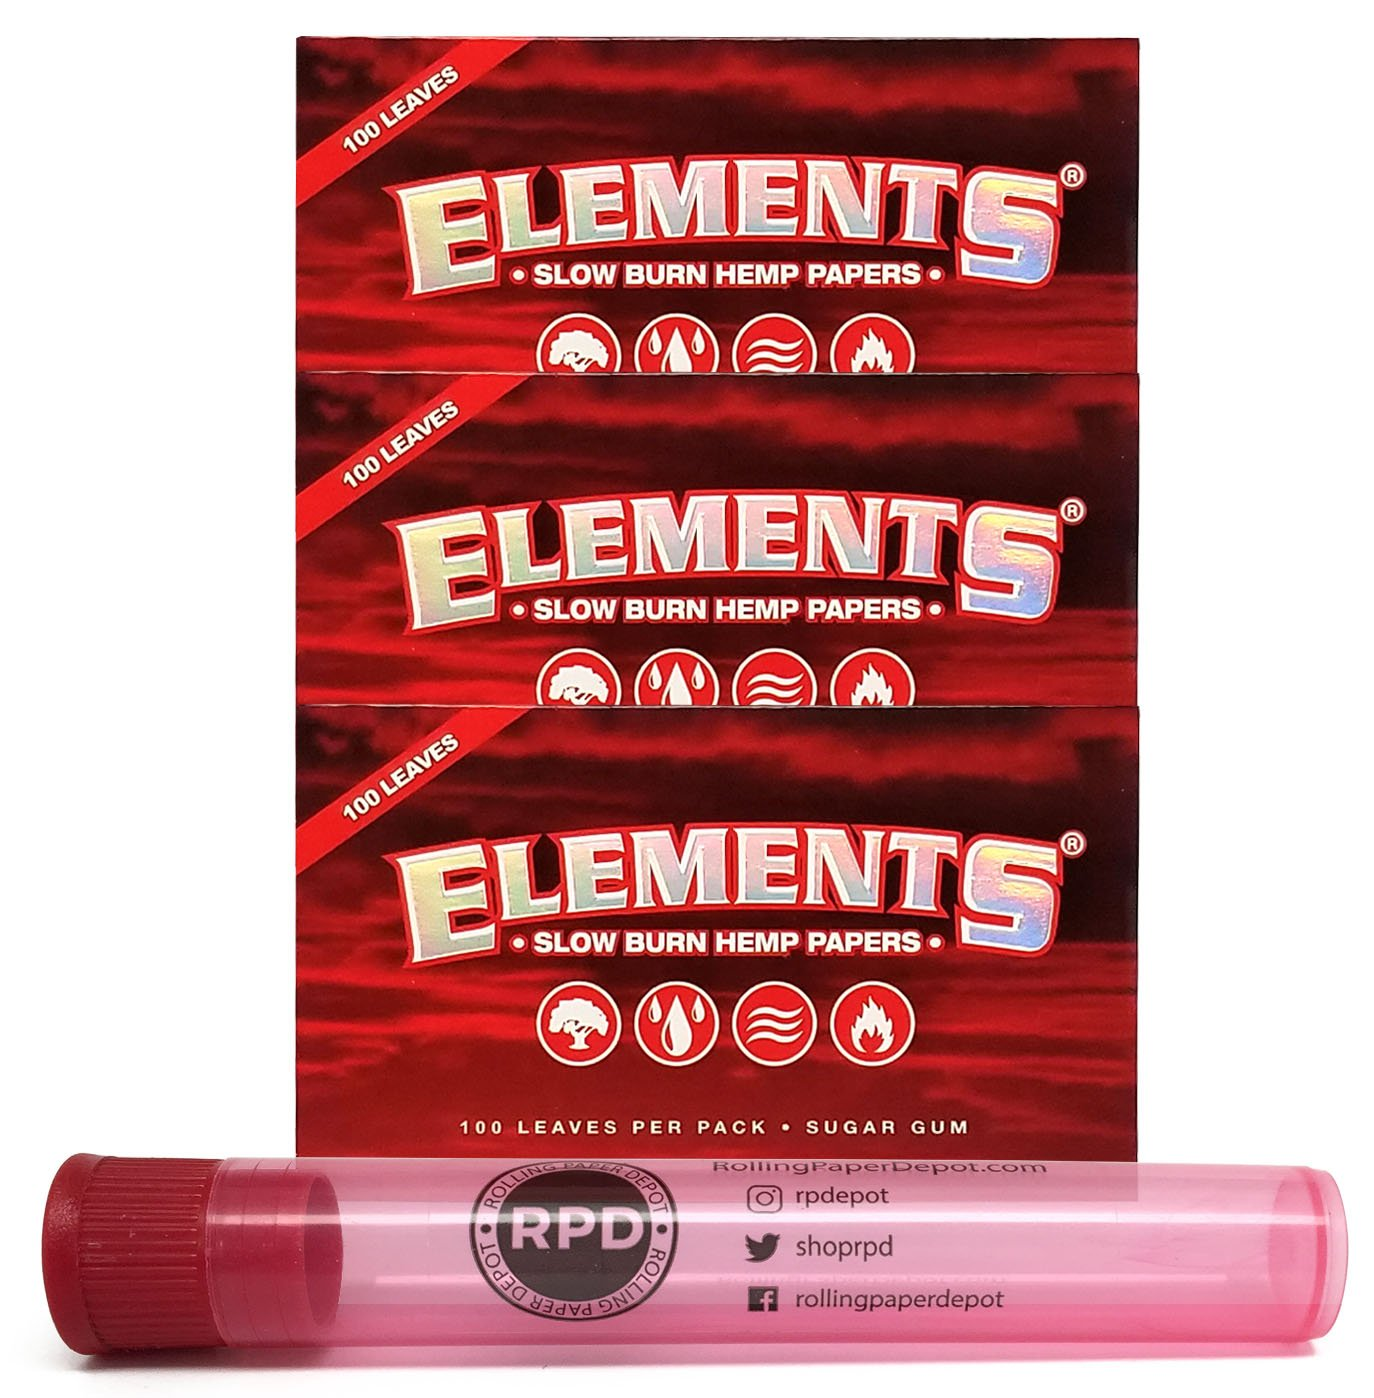 Elements Red Single Wide Slow Burn Hemp Papers (3 Packs) with Rolling Paper  Depot Doob Tube